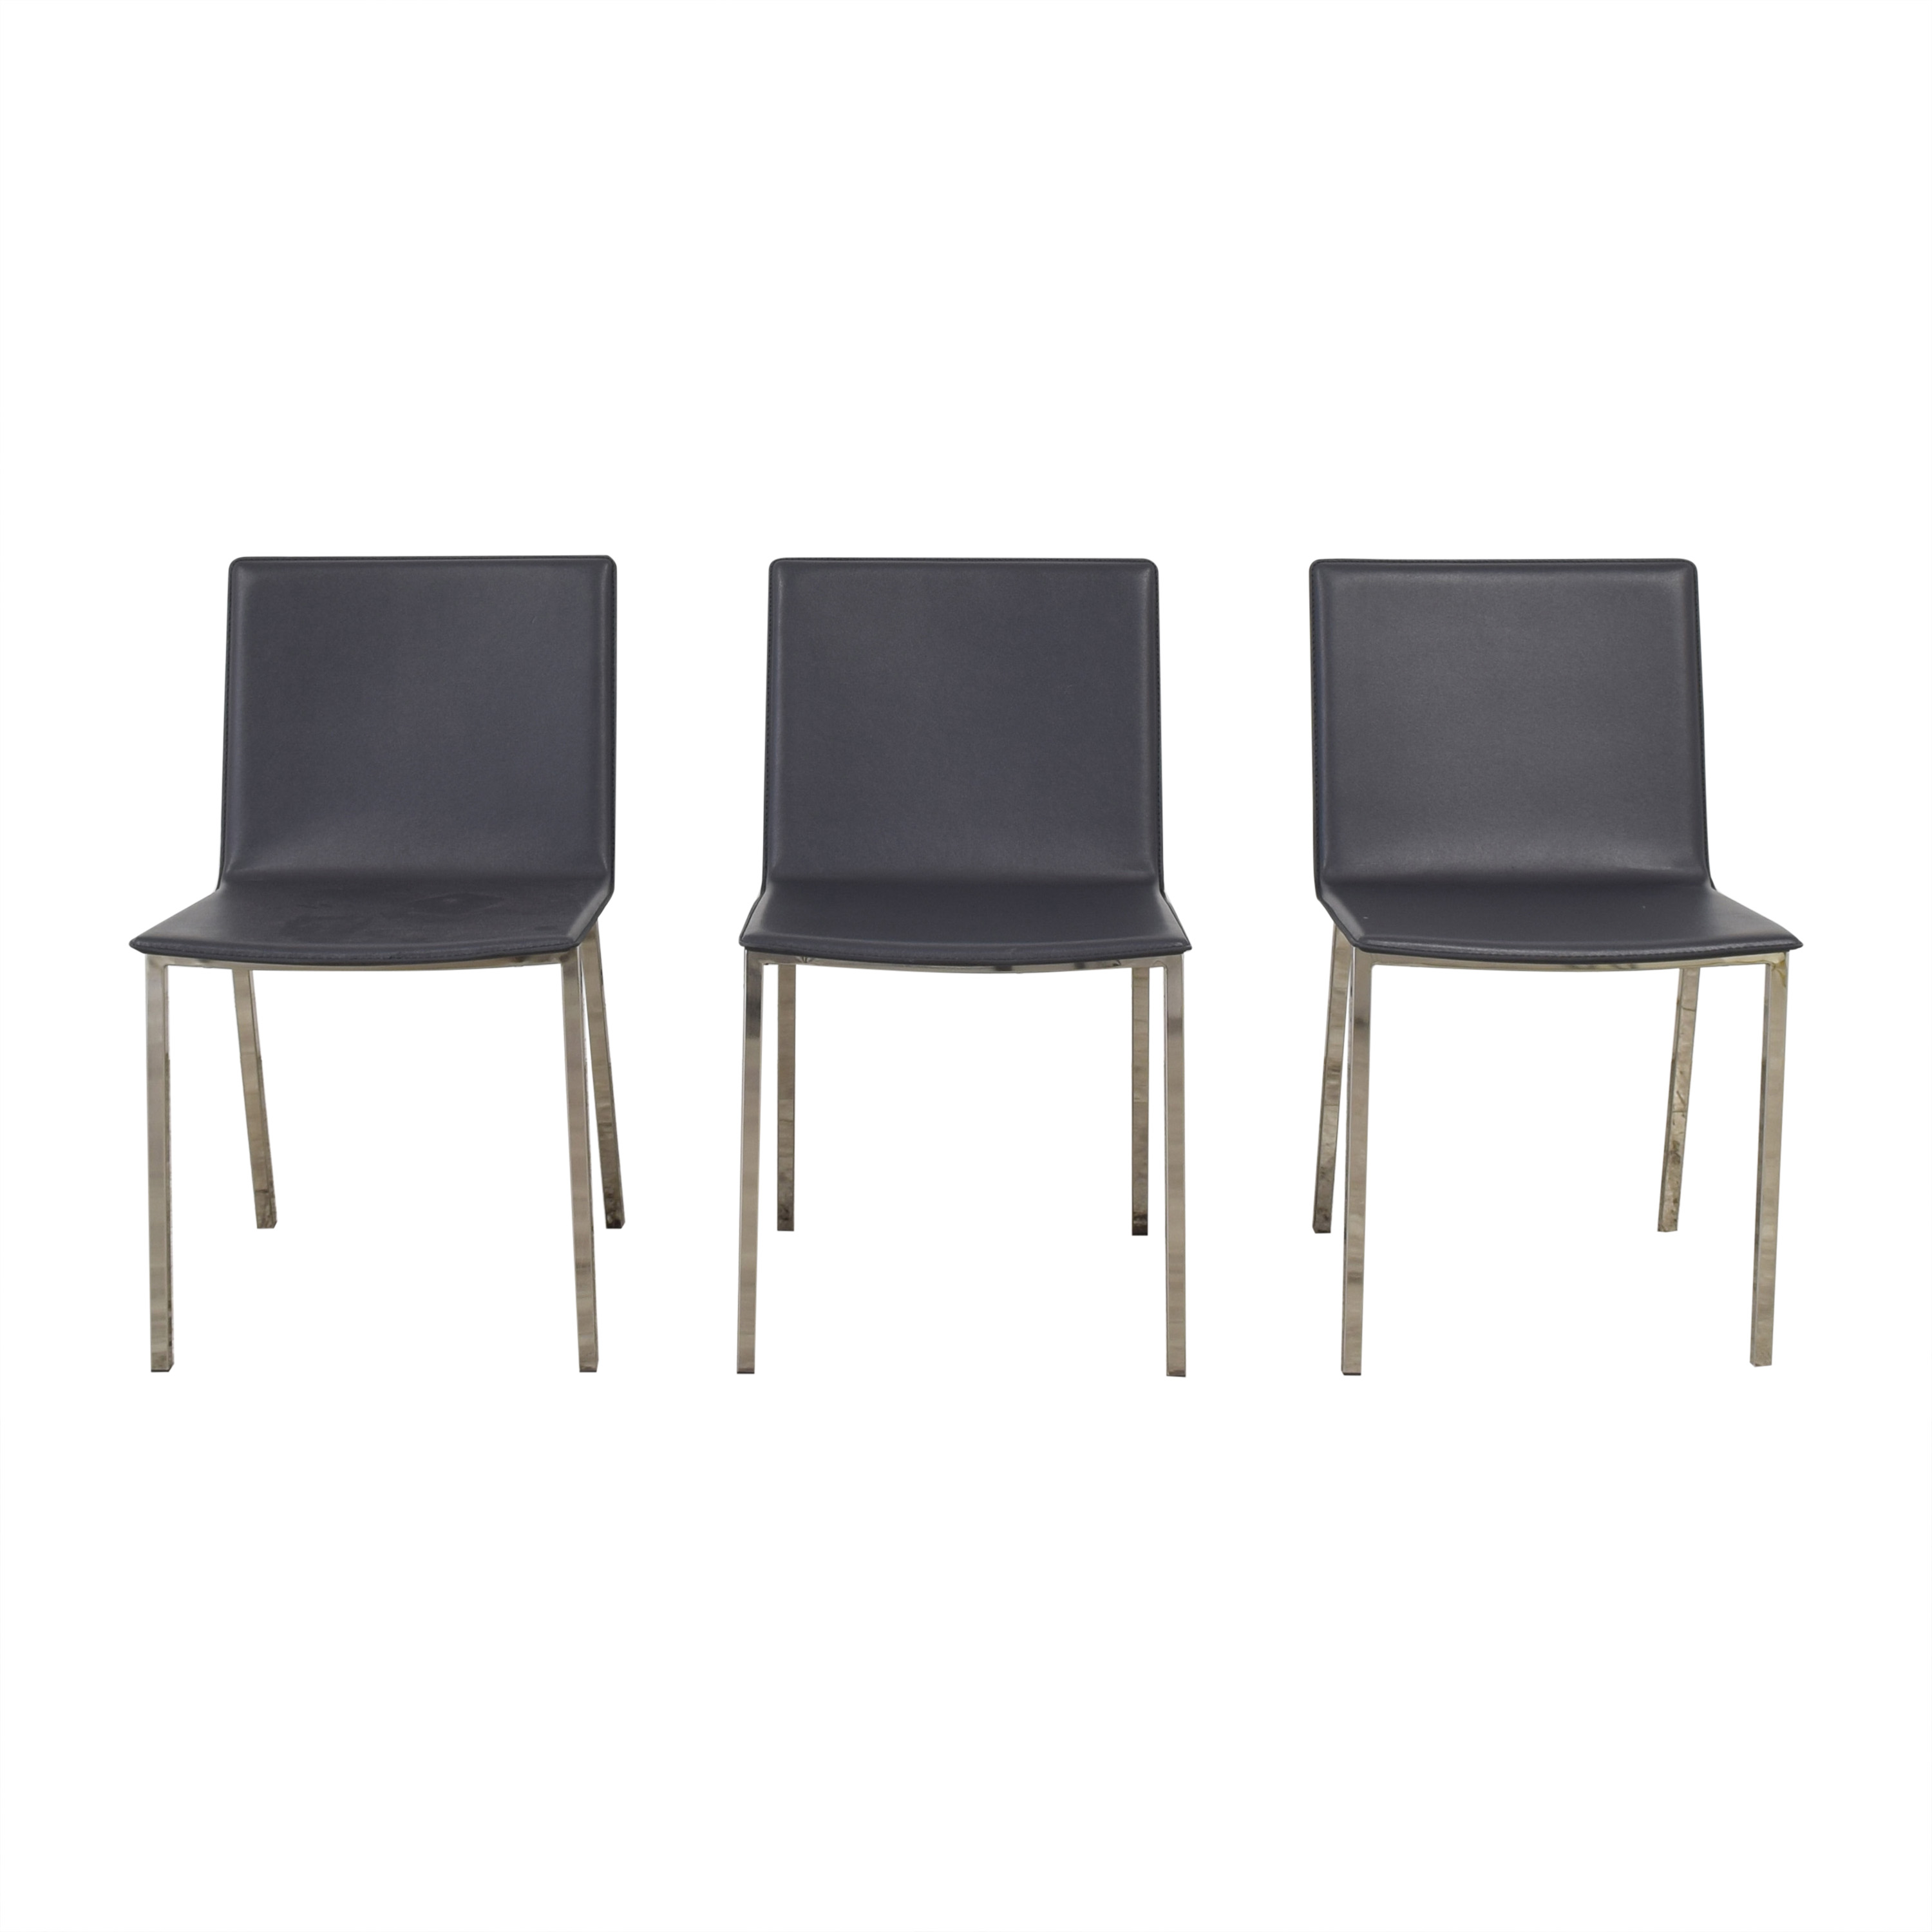 Wayfair Wayfair Dining Chairs for sale